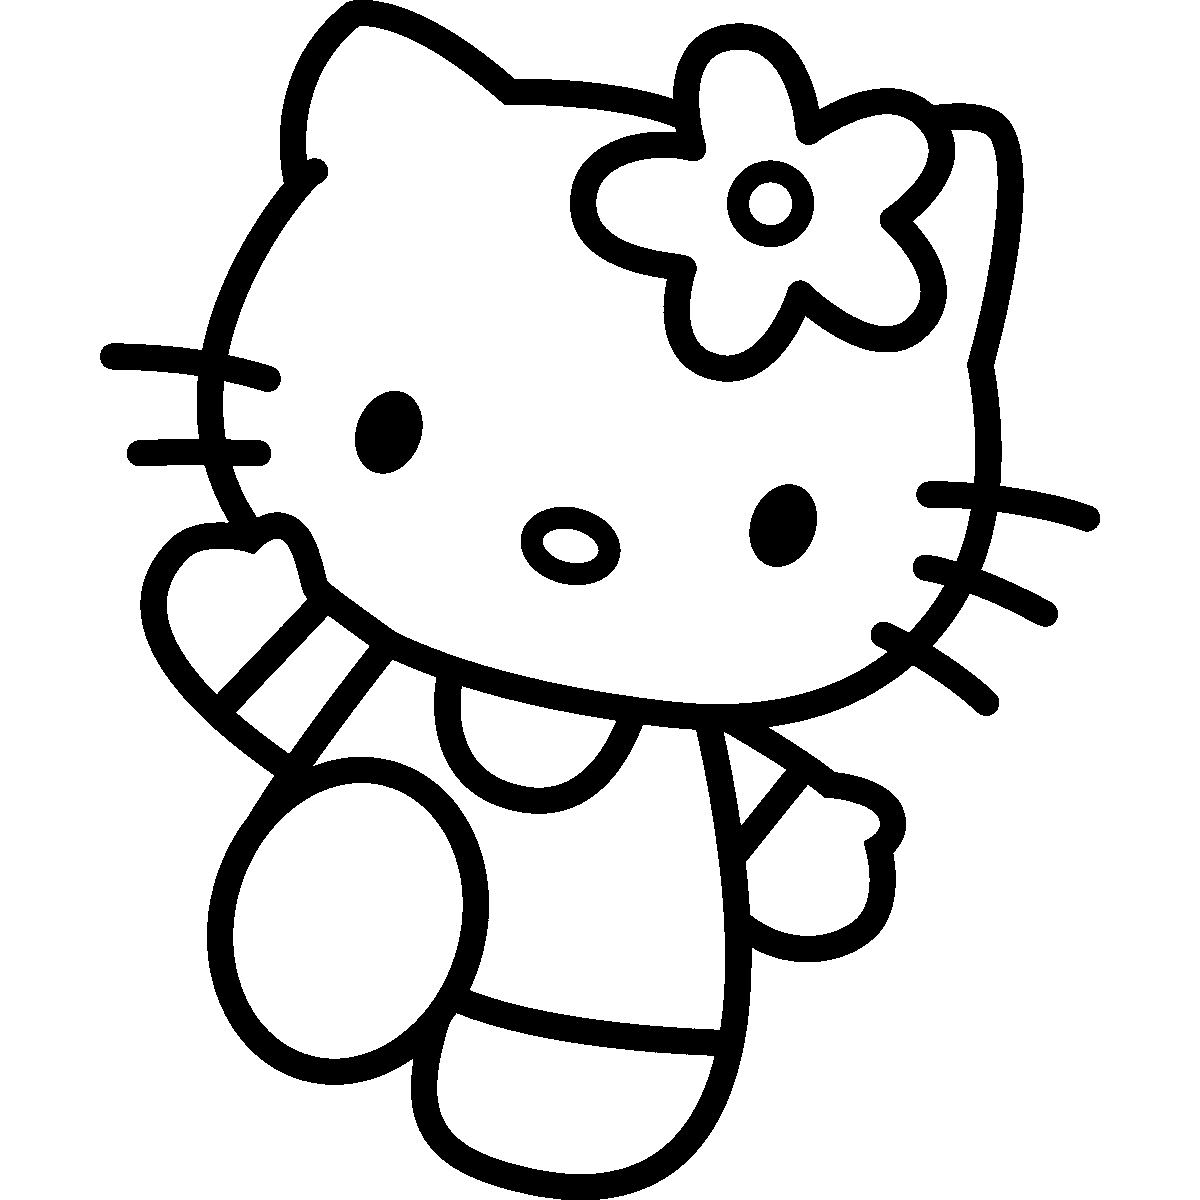 png black and white Silhouette at getdrawings com. Hello kitty clipart black and white